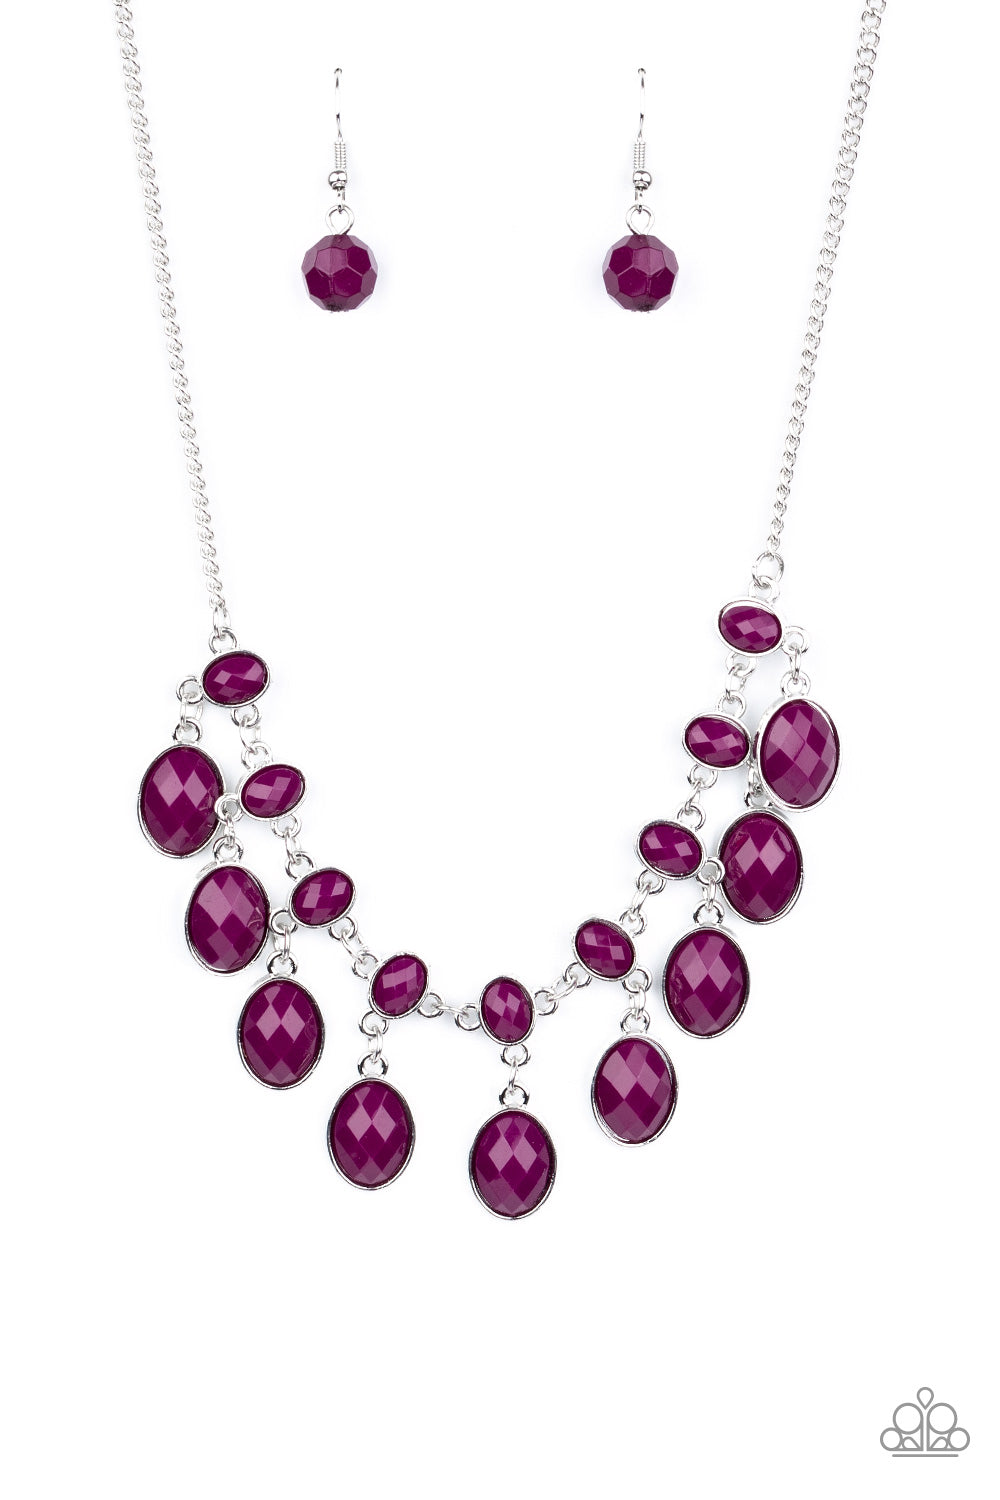 five-dollar-jewelry-lady-of-the-powerhouse-purple-necklace-paparazzi-accessories